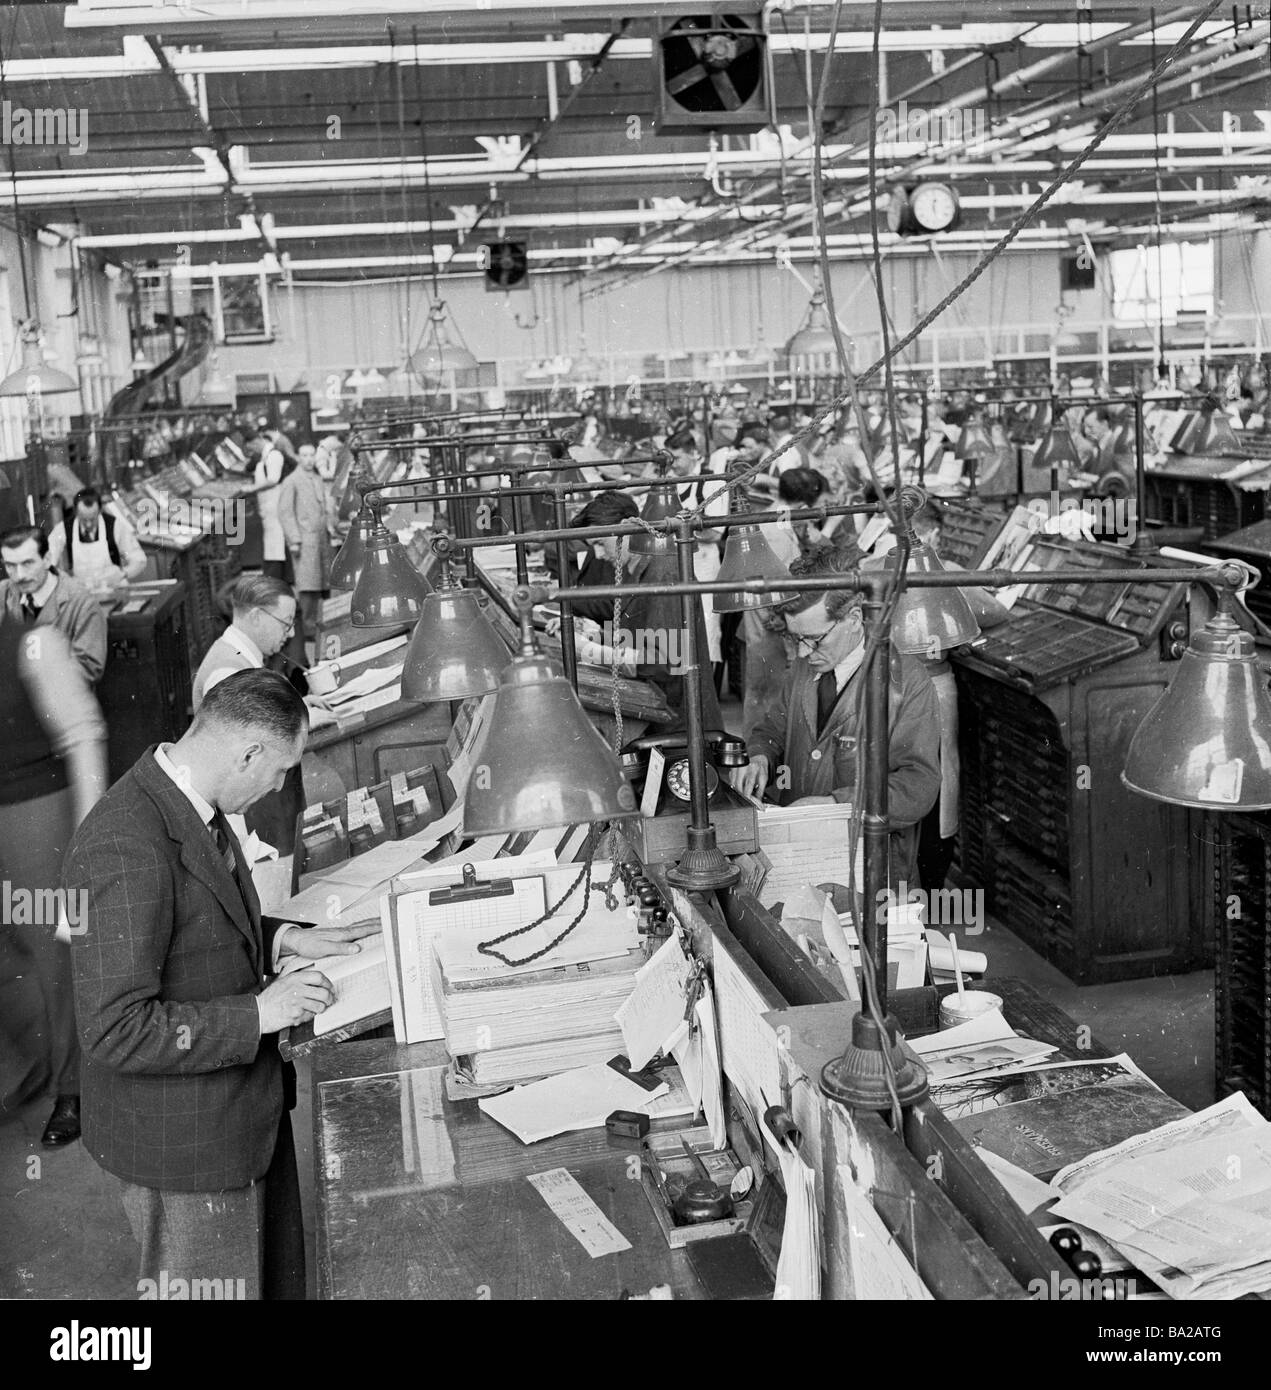 General view of the typesetting room at the HMV print factory England 1950s - Stock Image